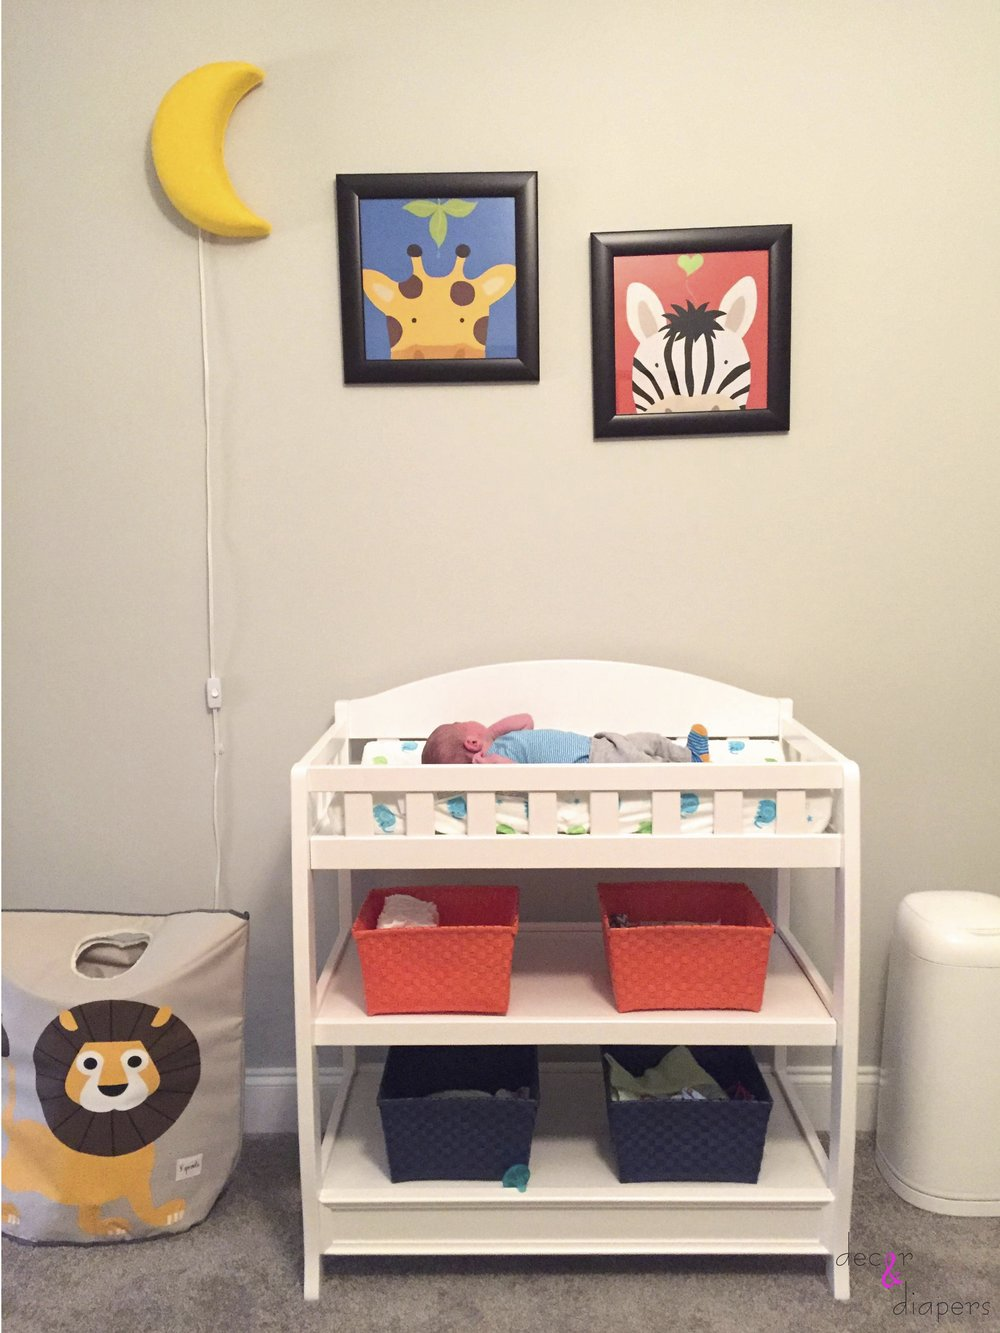 The changing table with colorful bins to hide all your baby essentials, and a glowing moon light above